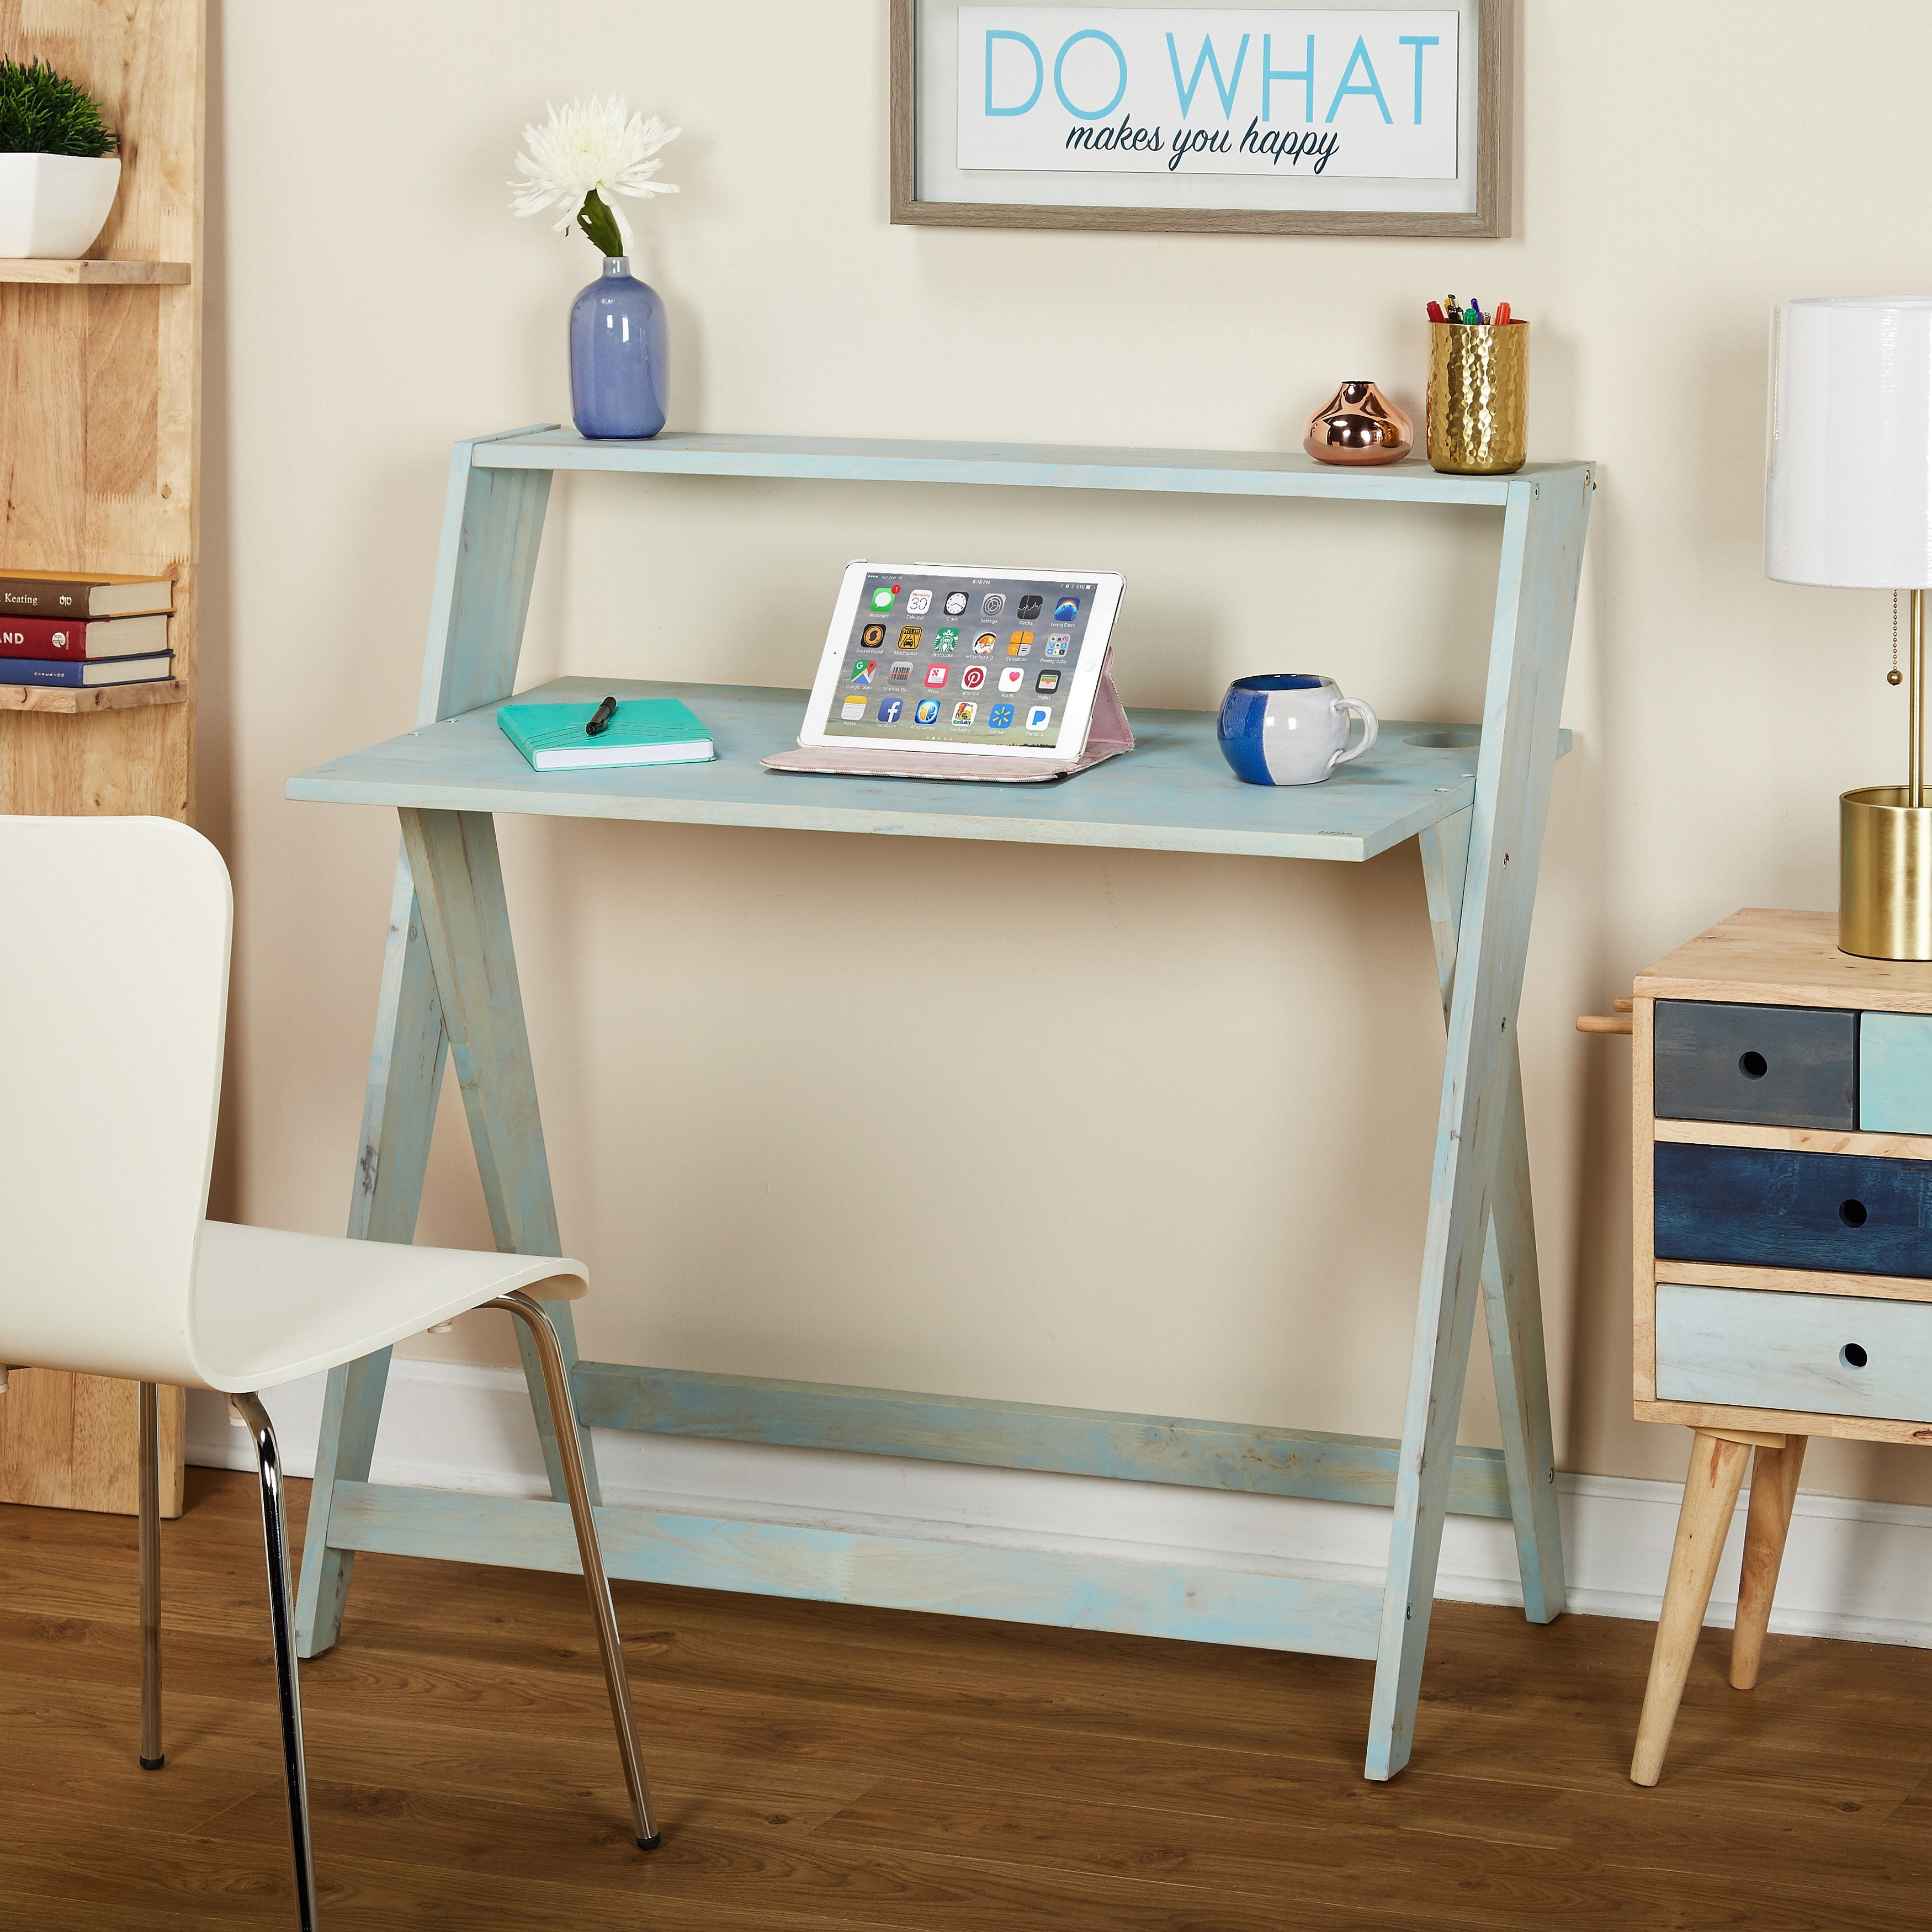 buy size small desks computer tables online at overstock com our rh overstock com Writing Desk Overstock Overstock Discount Furniture